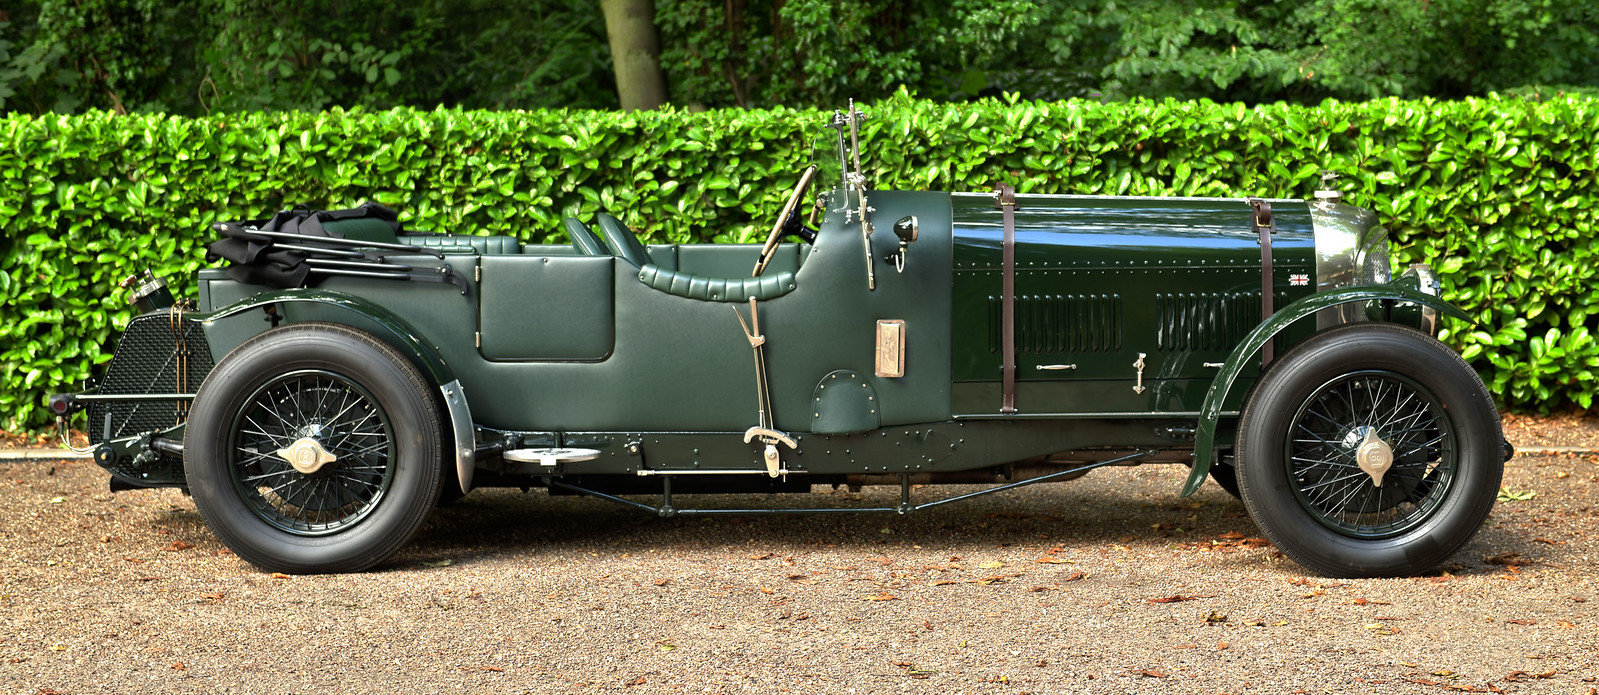 1949 Bentley Speed Eight by Racing Green For Sale (picture 2 of 6)